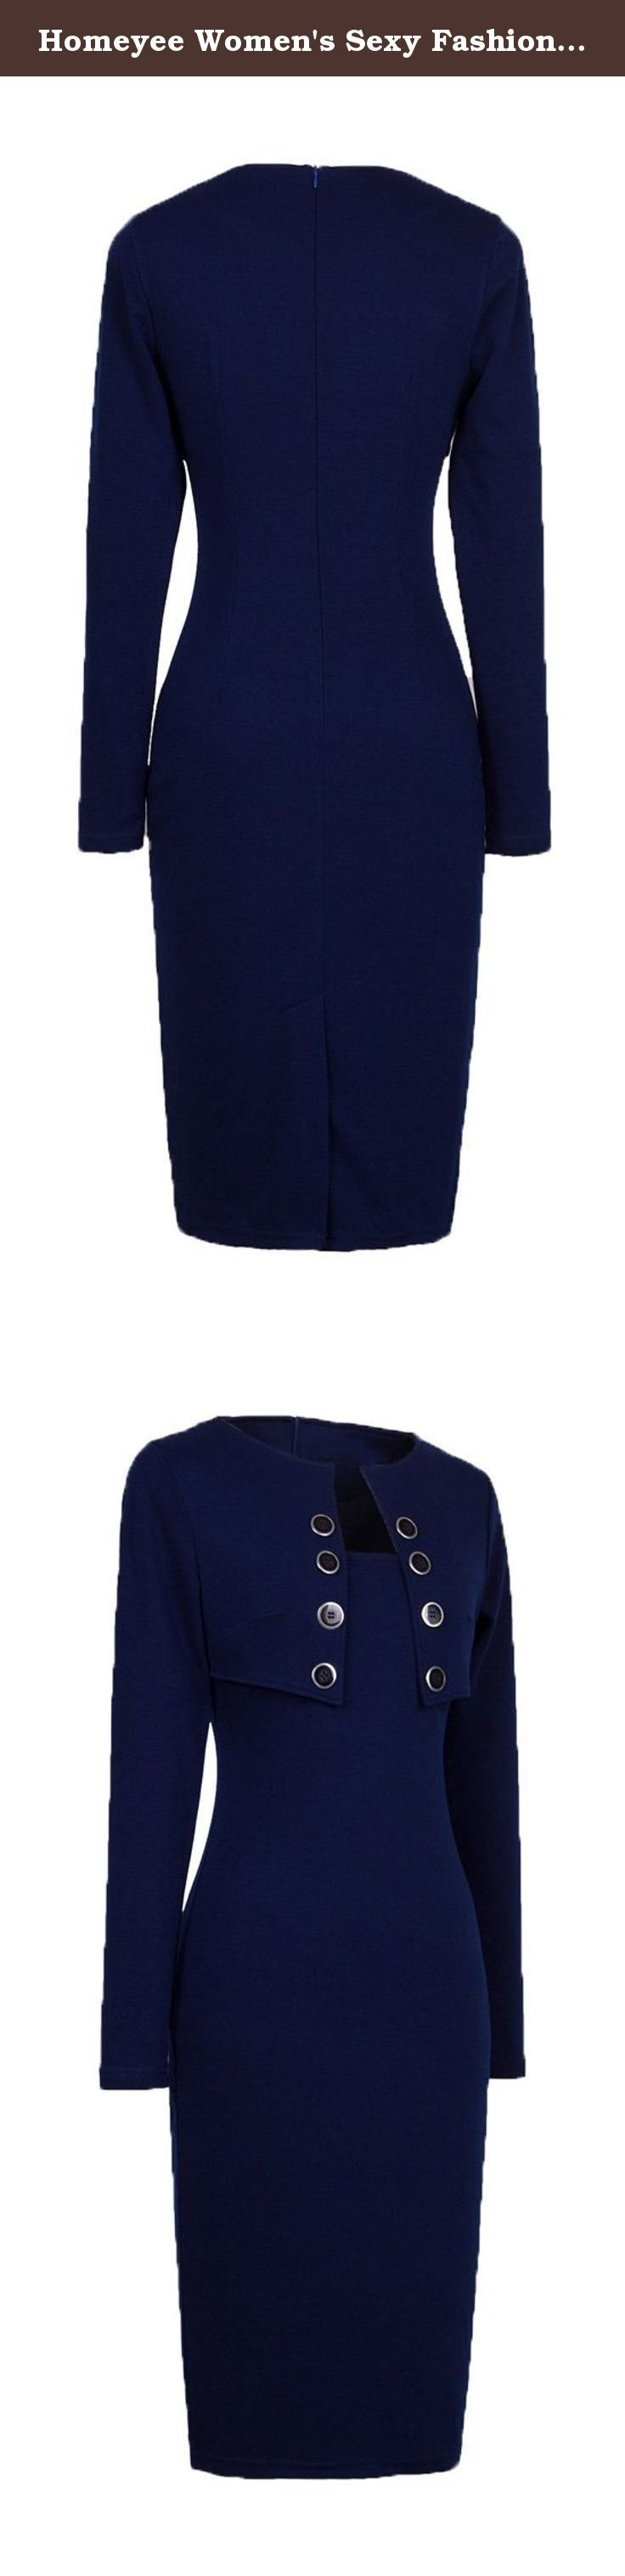 Homeyee Women's Sexy Fashion Long Sleeve Wear to Work Bodycon Dress B10 (Medium, Dark Blue). Size Information(just for reference): Size Small:Bust(32inch),Waist(26inch),Hip(33.5inch),Shoulder wide(14.5inch),Sleeve length(22.5inch),Length(39inch) Size Medium:Bust(34inch),Waist(28inch),Hip(35.5inch),Shoulder wide(14.8inch),Sleeve length(22.5inch),Length(39inch) Size Large:Bust(36inch),Waist(30inch),Hip(37.5inch),Shoulder wide(15.1inch),Sleeve length(23inch),Length(40inch) Size...